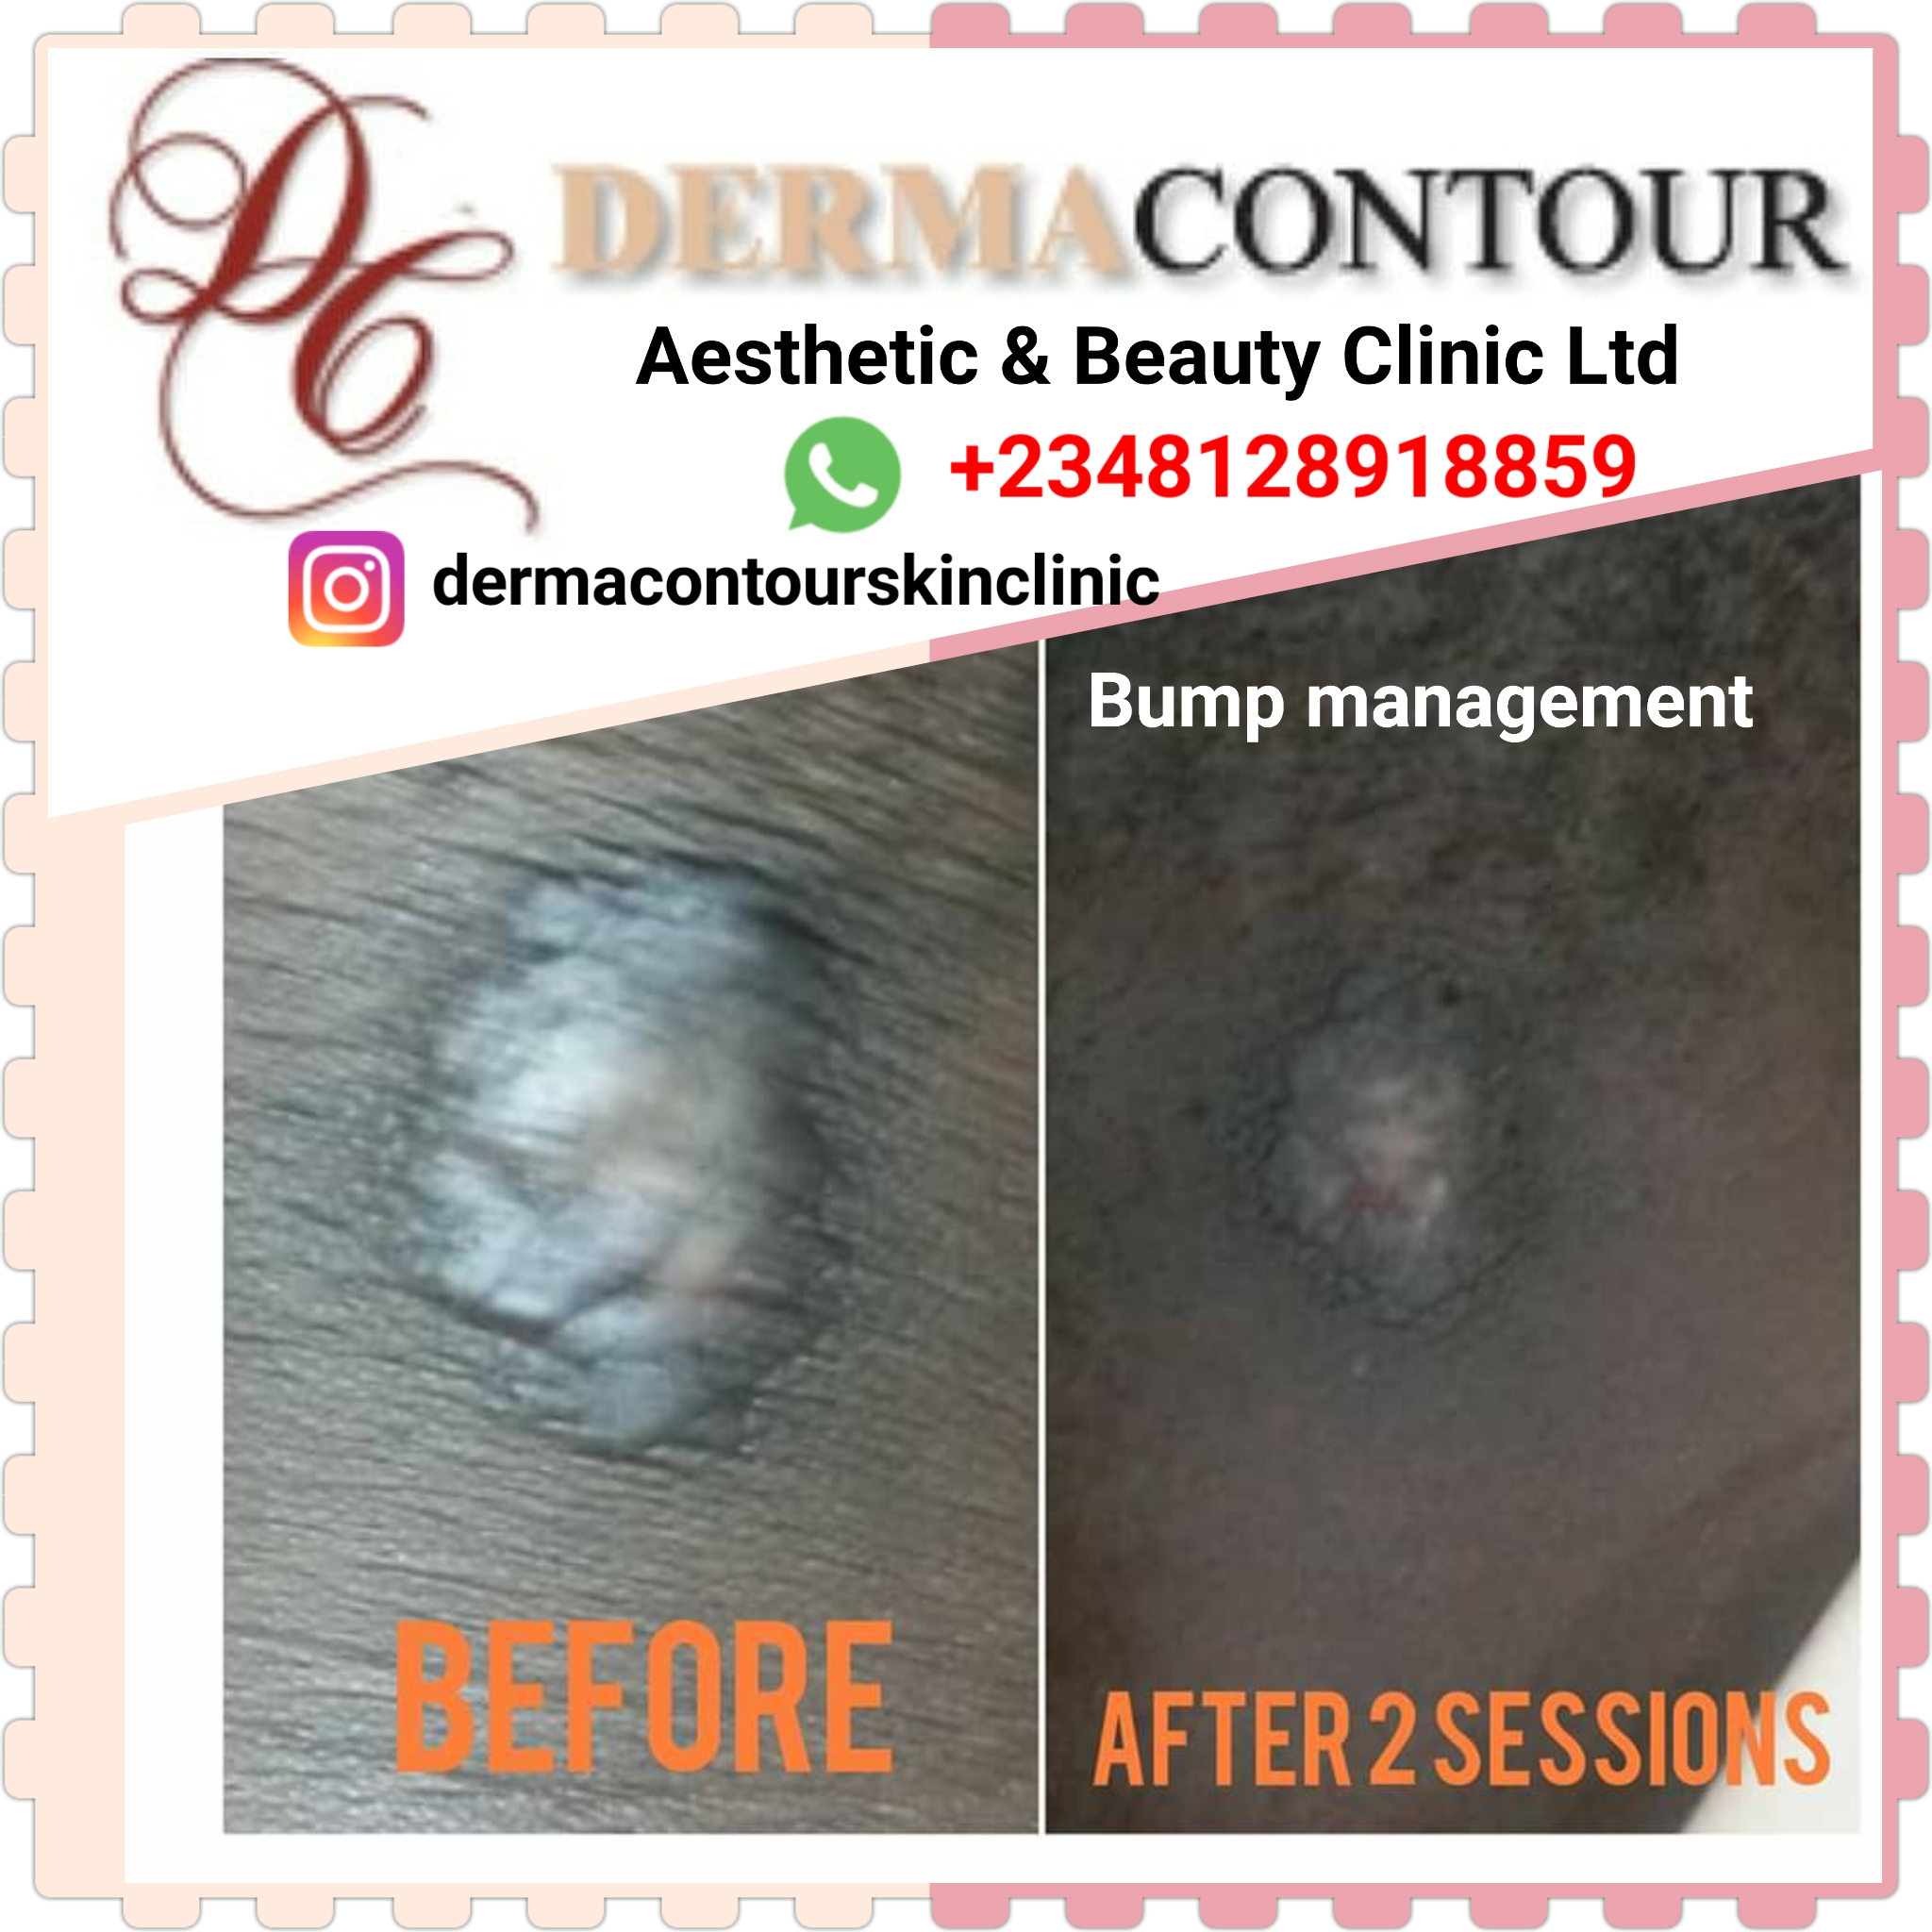 a dermatologist, acne scar removal, acne scar treatment, acne treatment, cosmetic surgery, dermatology near me, acne, scar removal, skin doctor